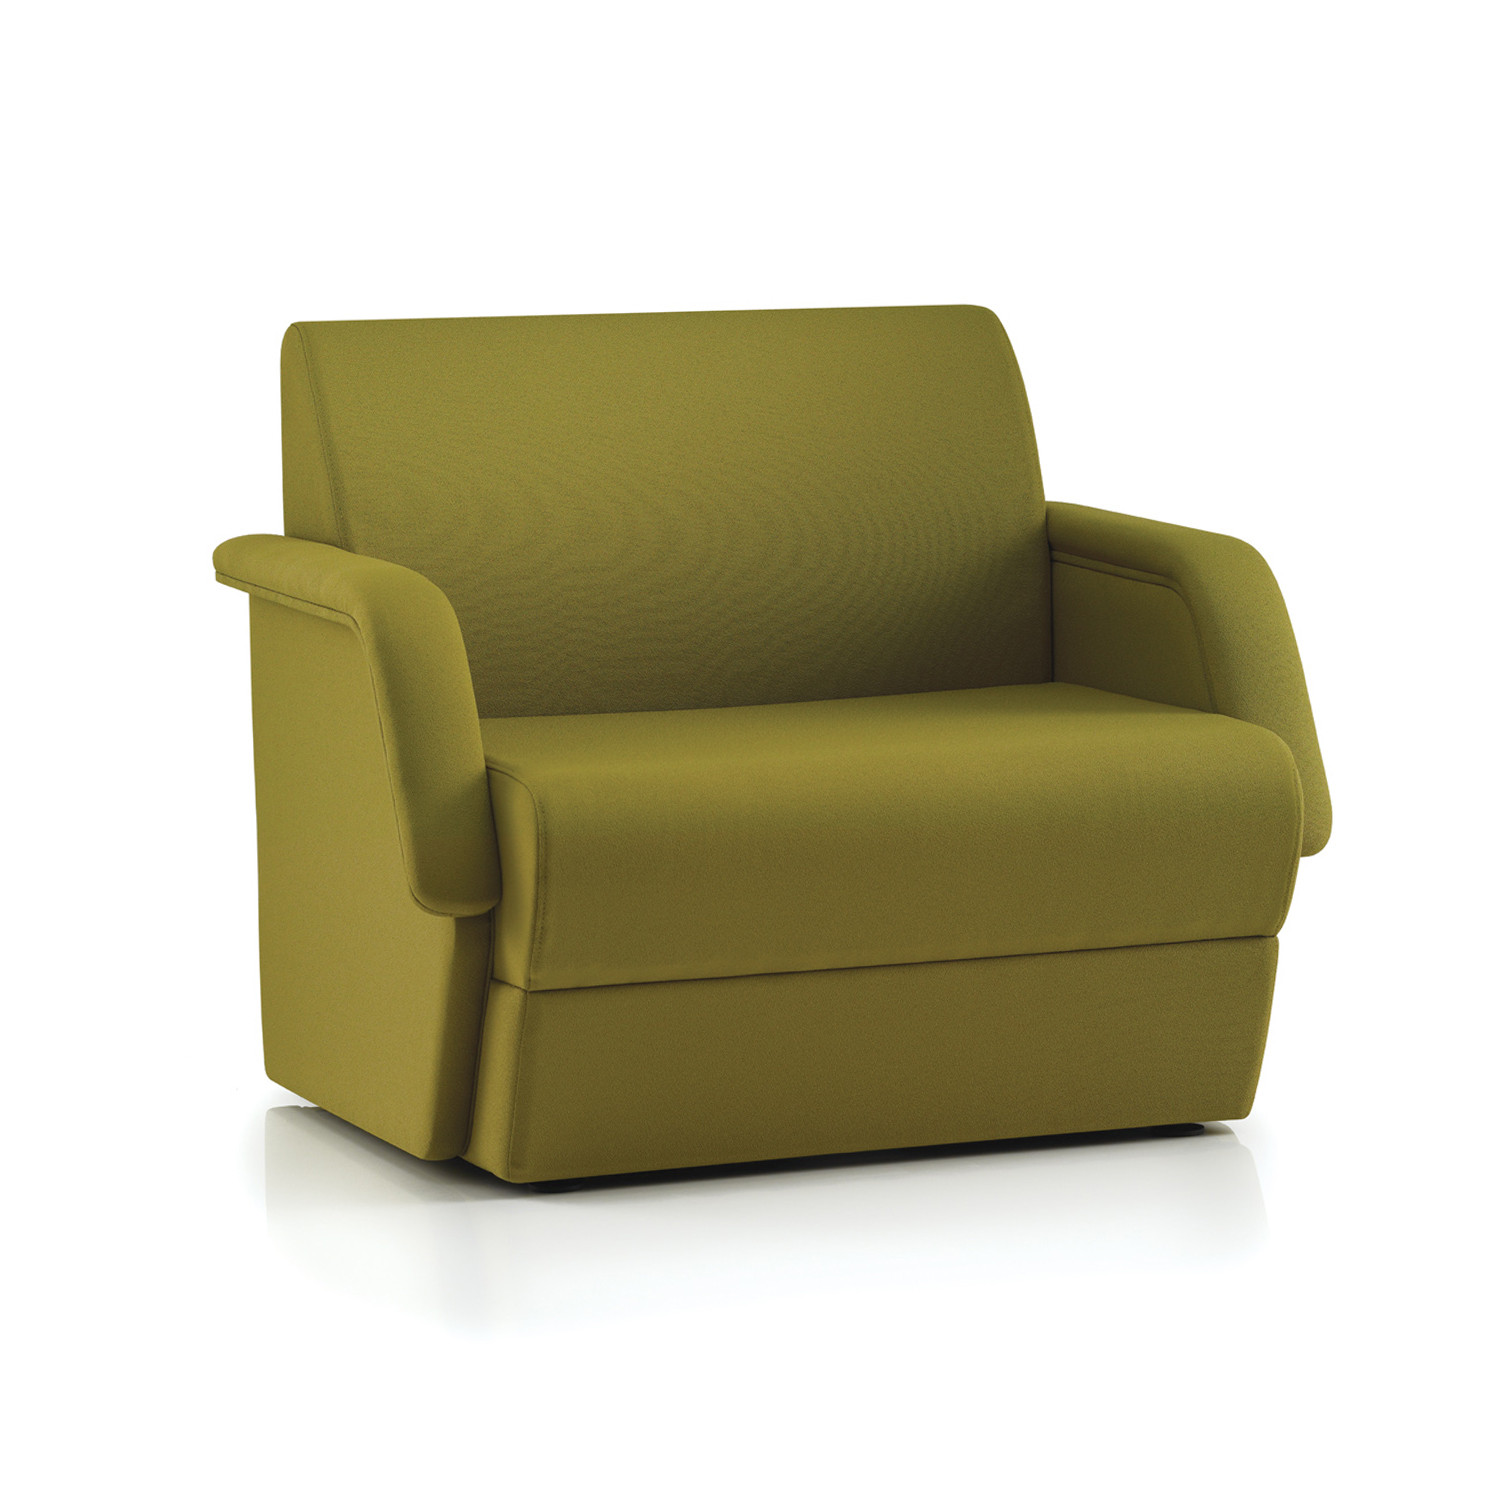 Series 9500 Sofa by Pledge